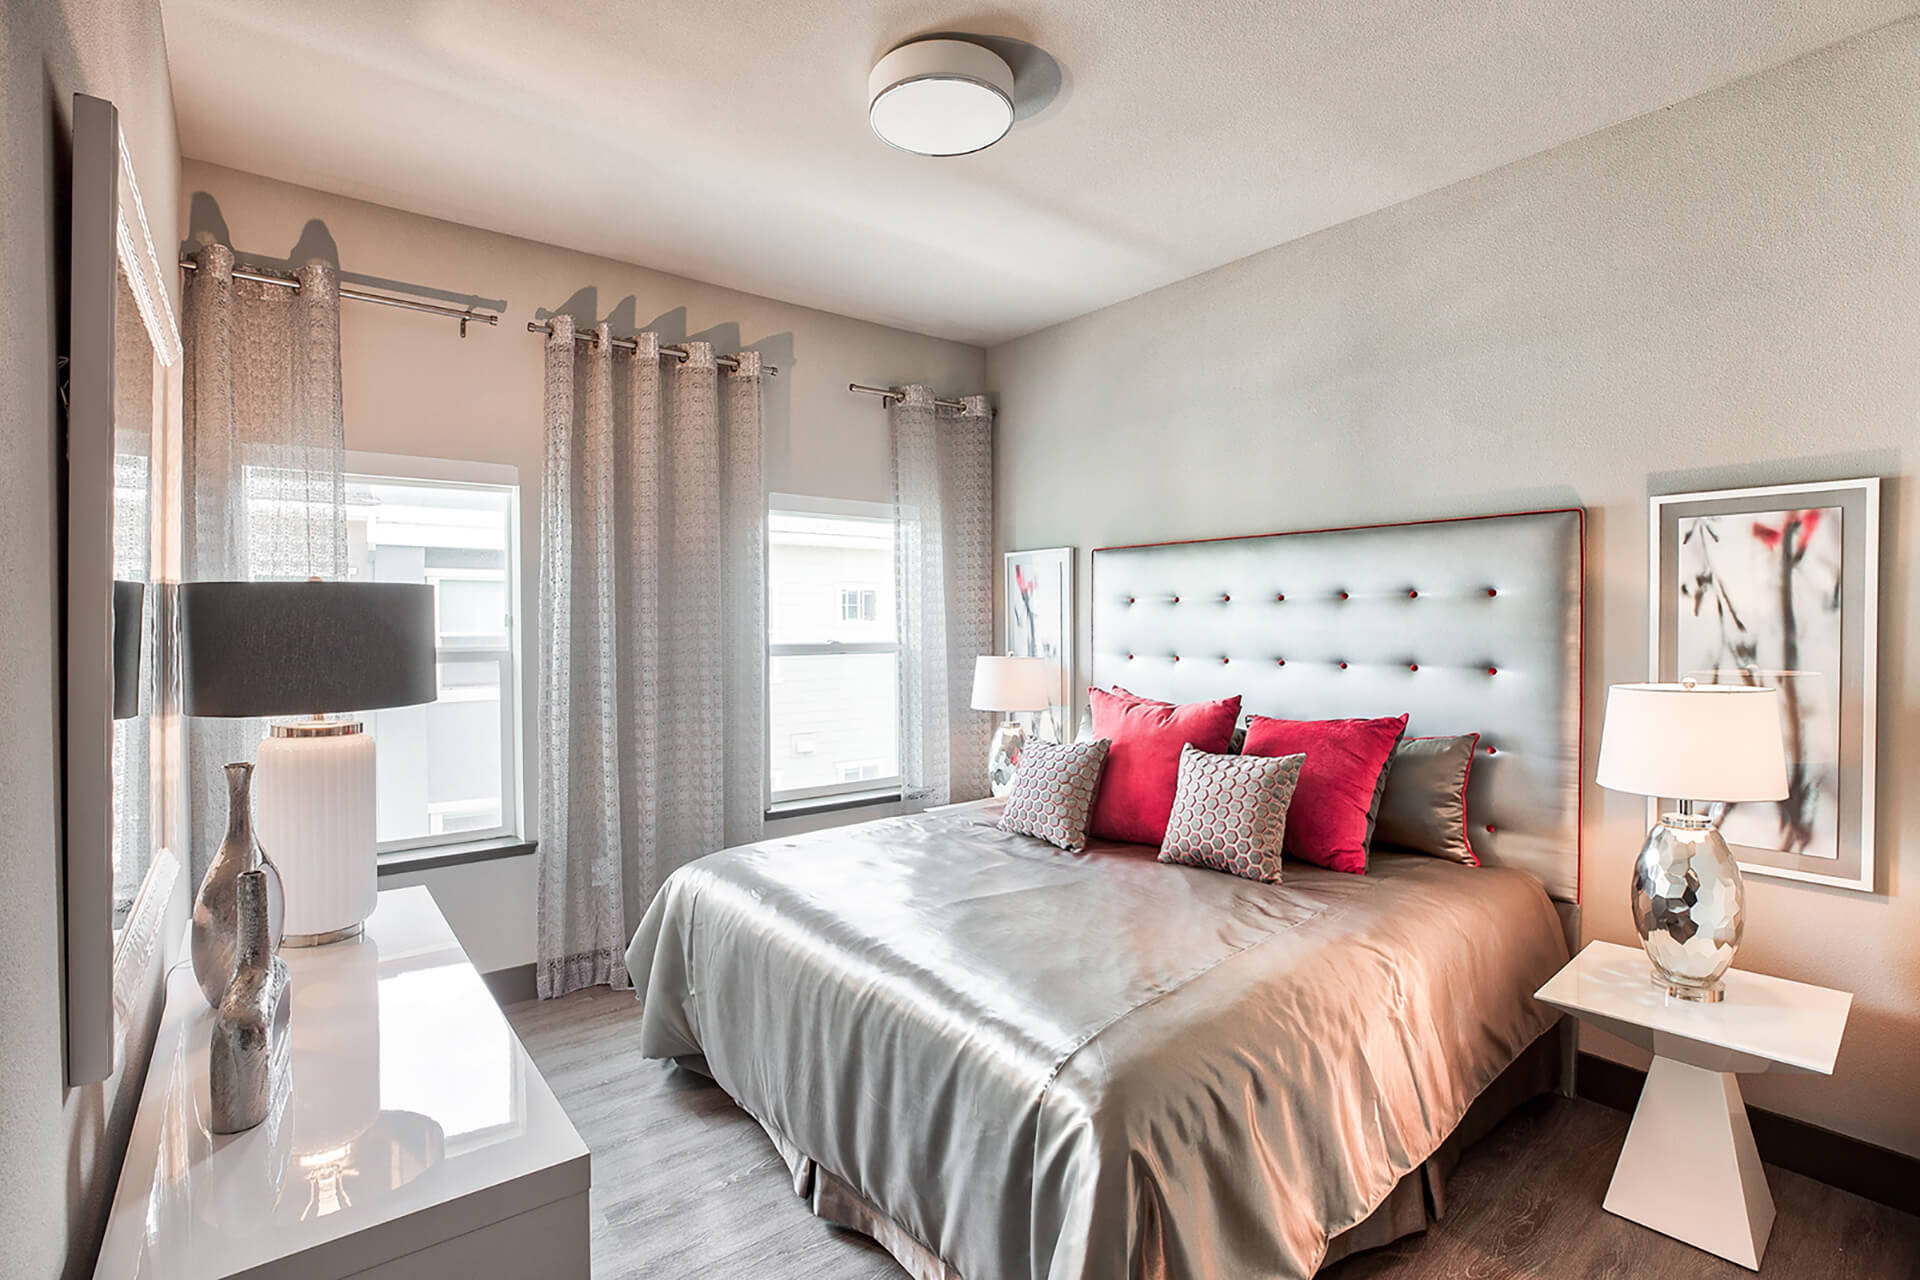 Spacious bedrooms at Blu Harbor by Windsor, 94603, CA